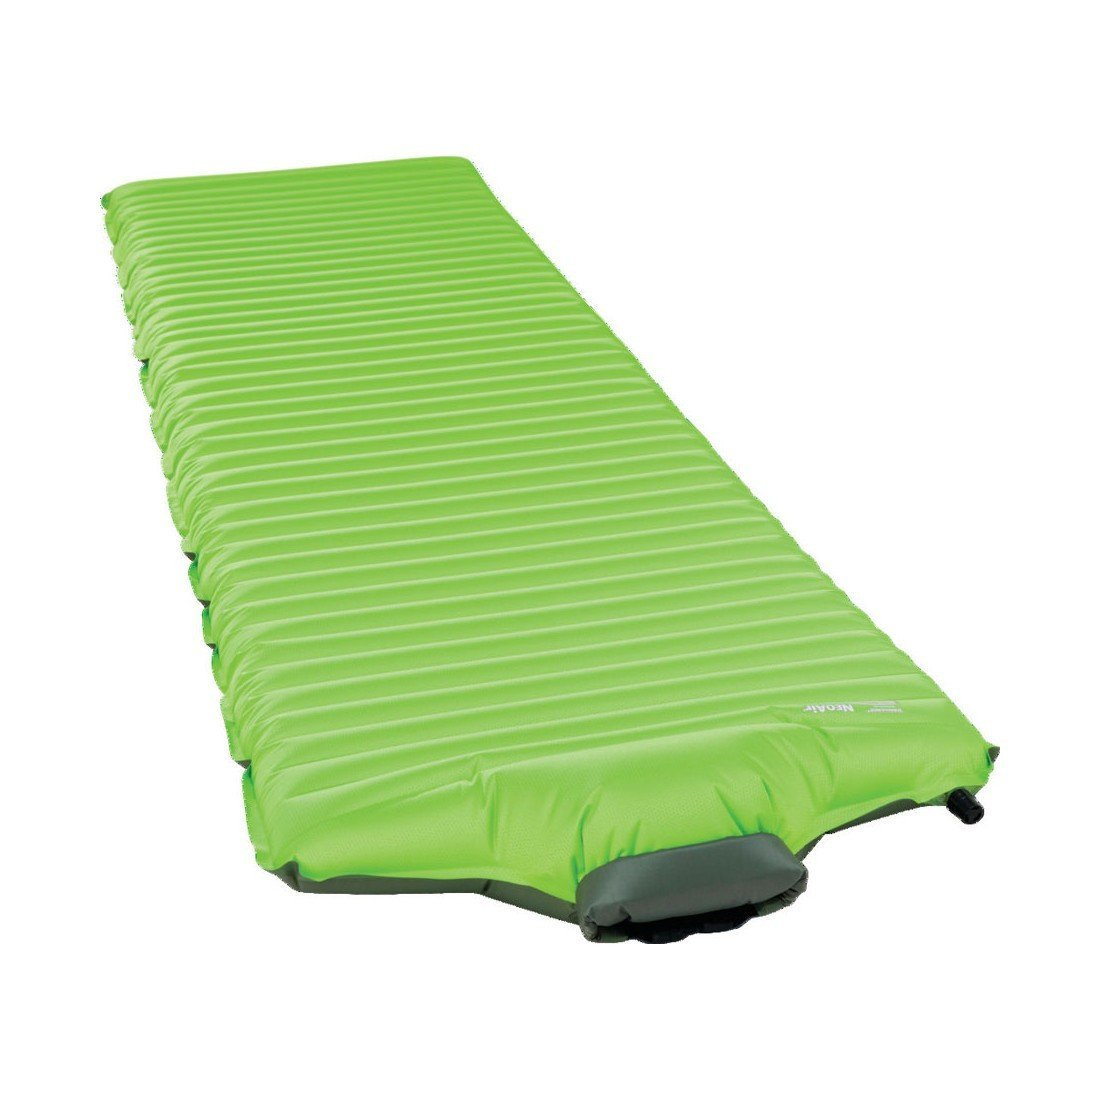 Thermarest NeoAir All Season SV Regular camping mat, shown inflated and laid flat in green colour